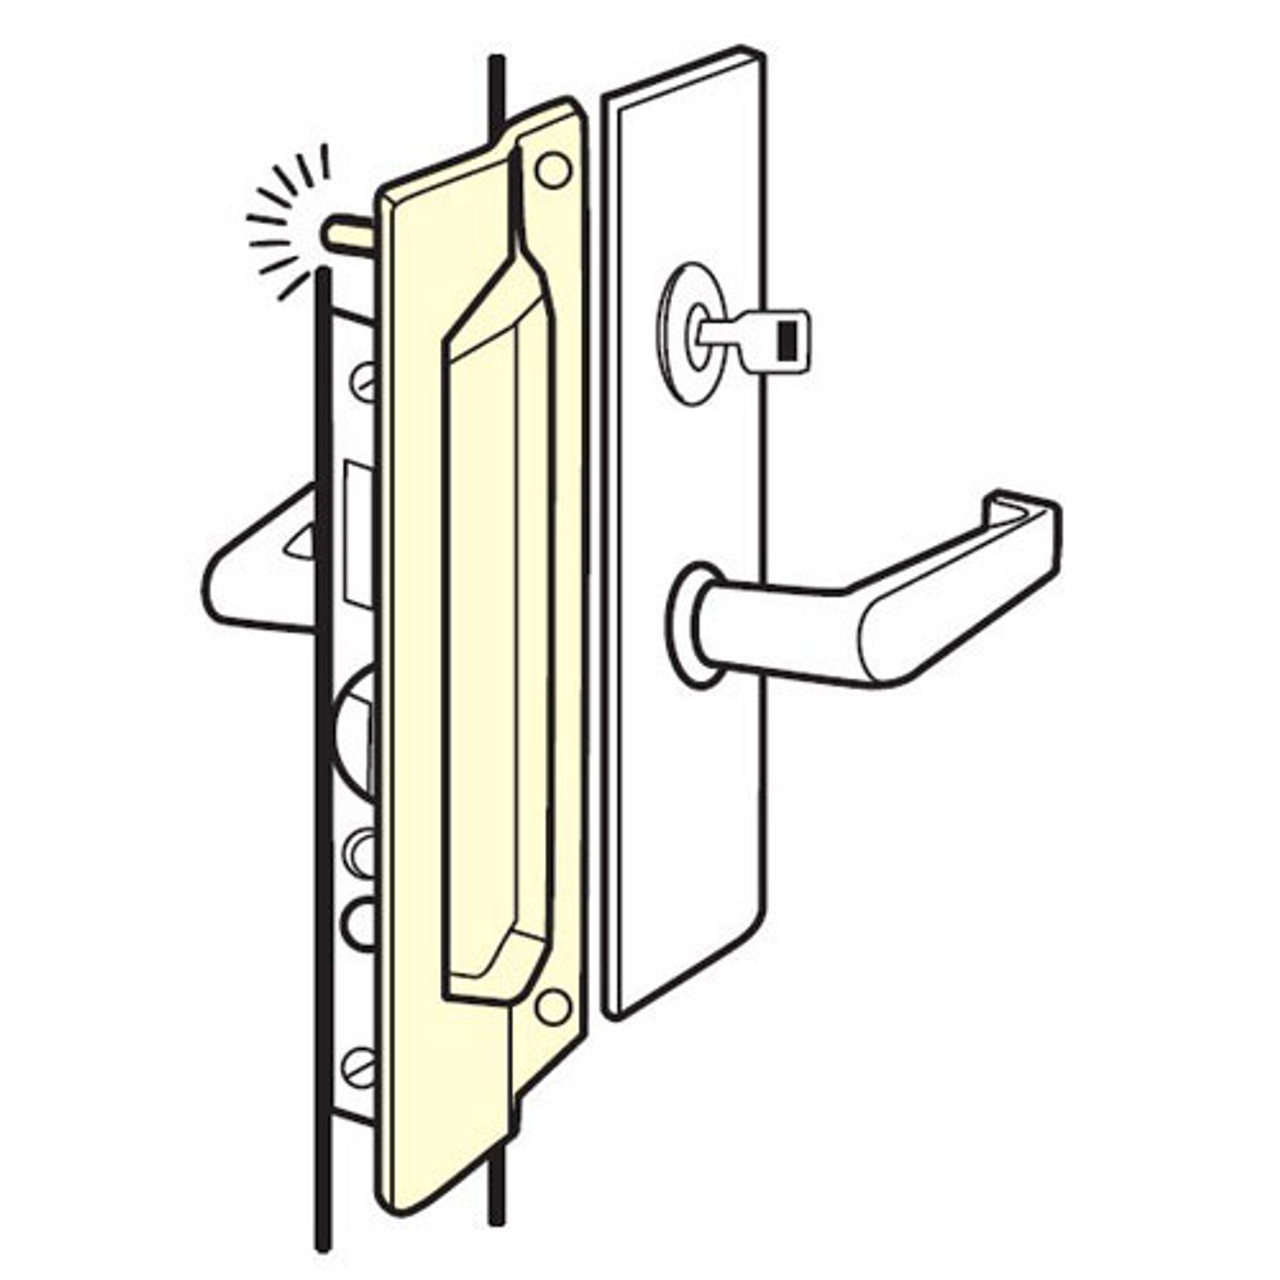 PMLP-211-CP Don Jo Latch Protector in Chrome Plated Finish